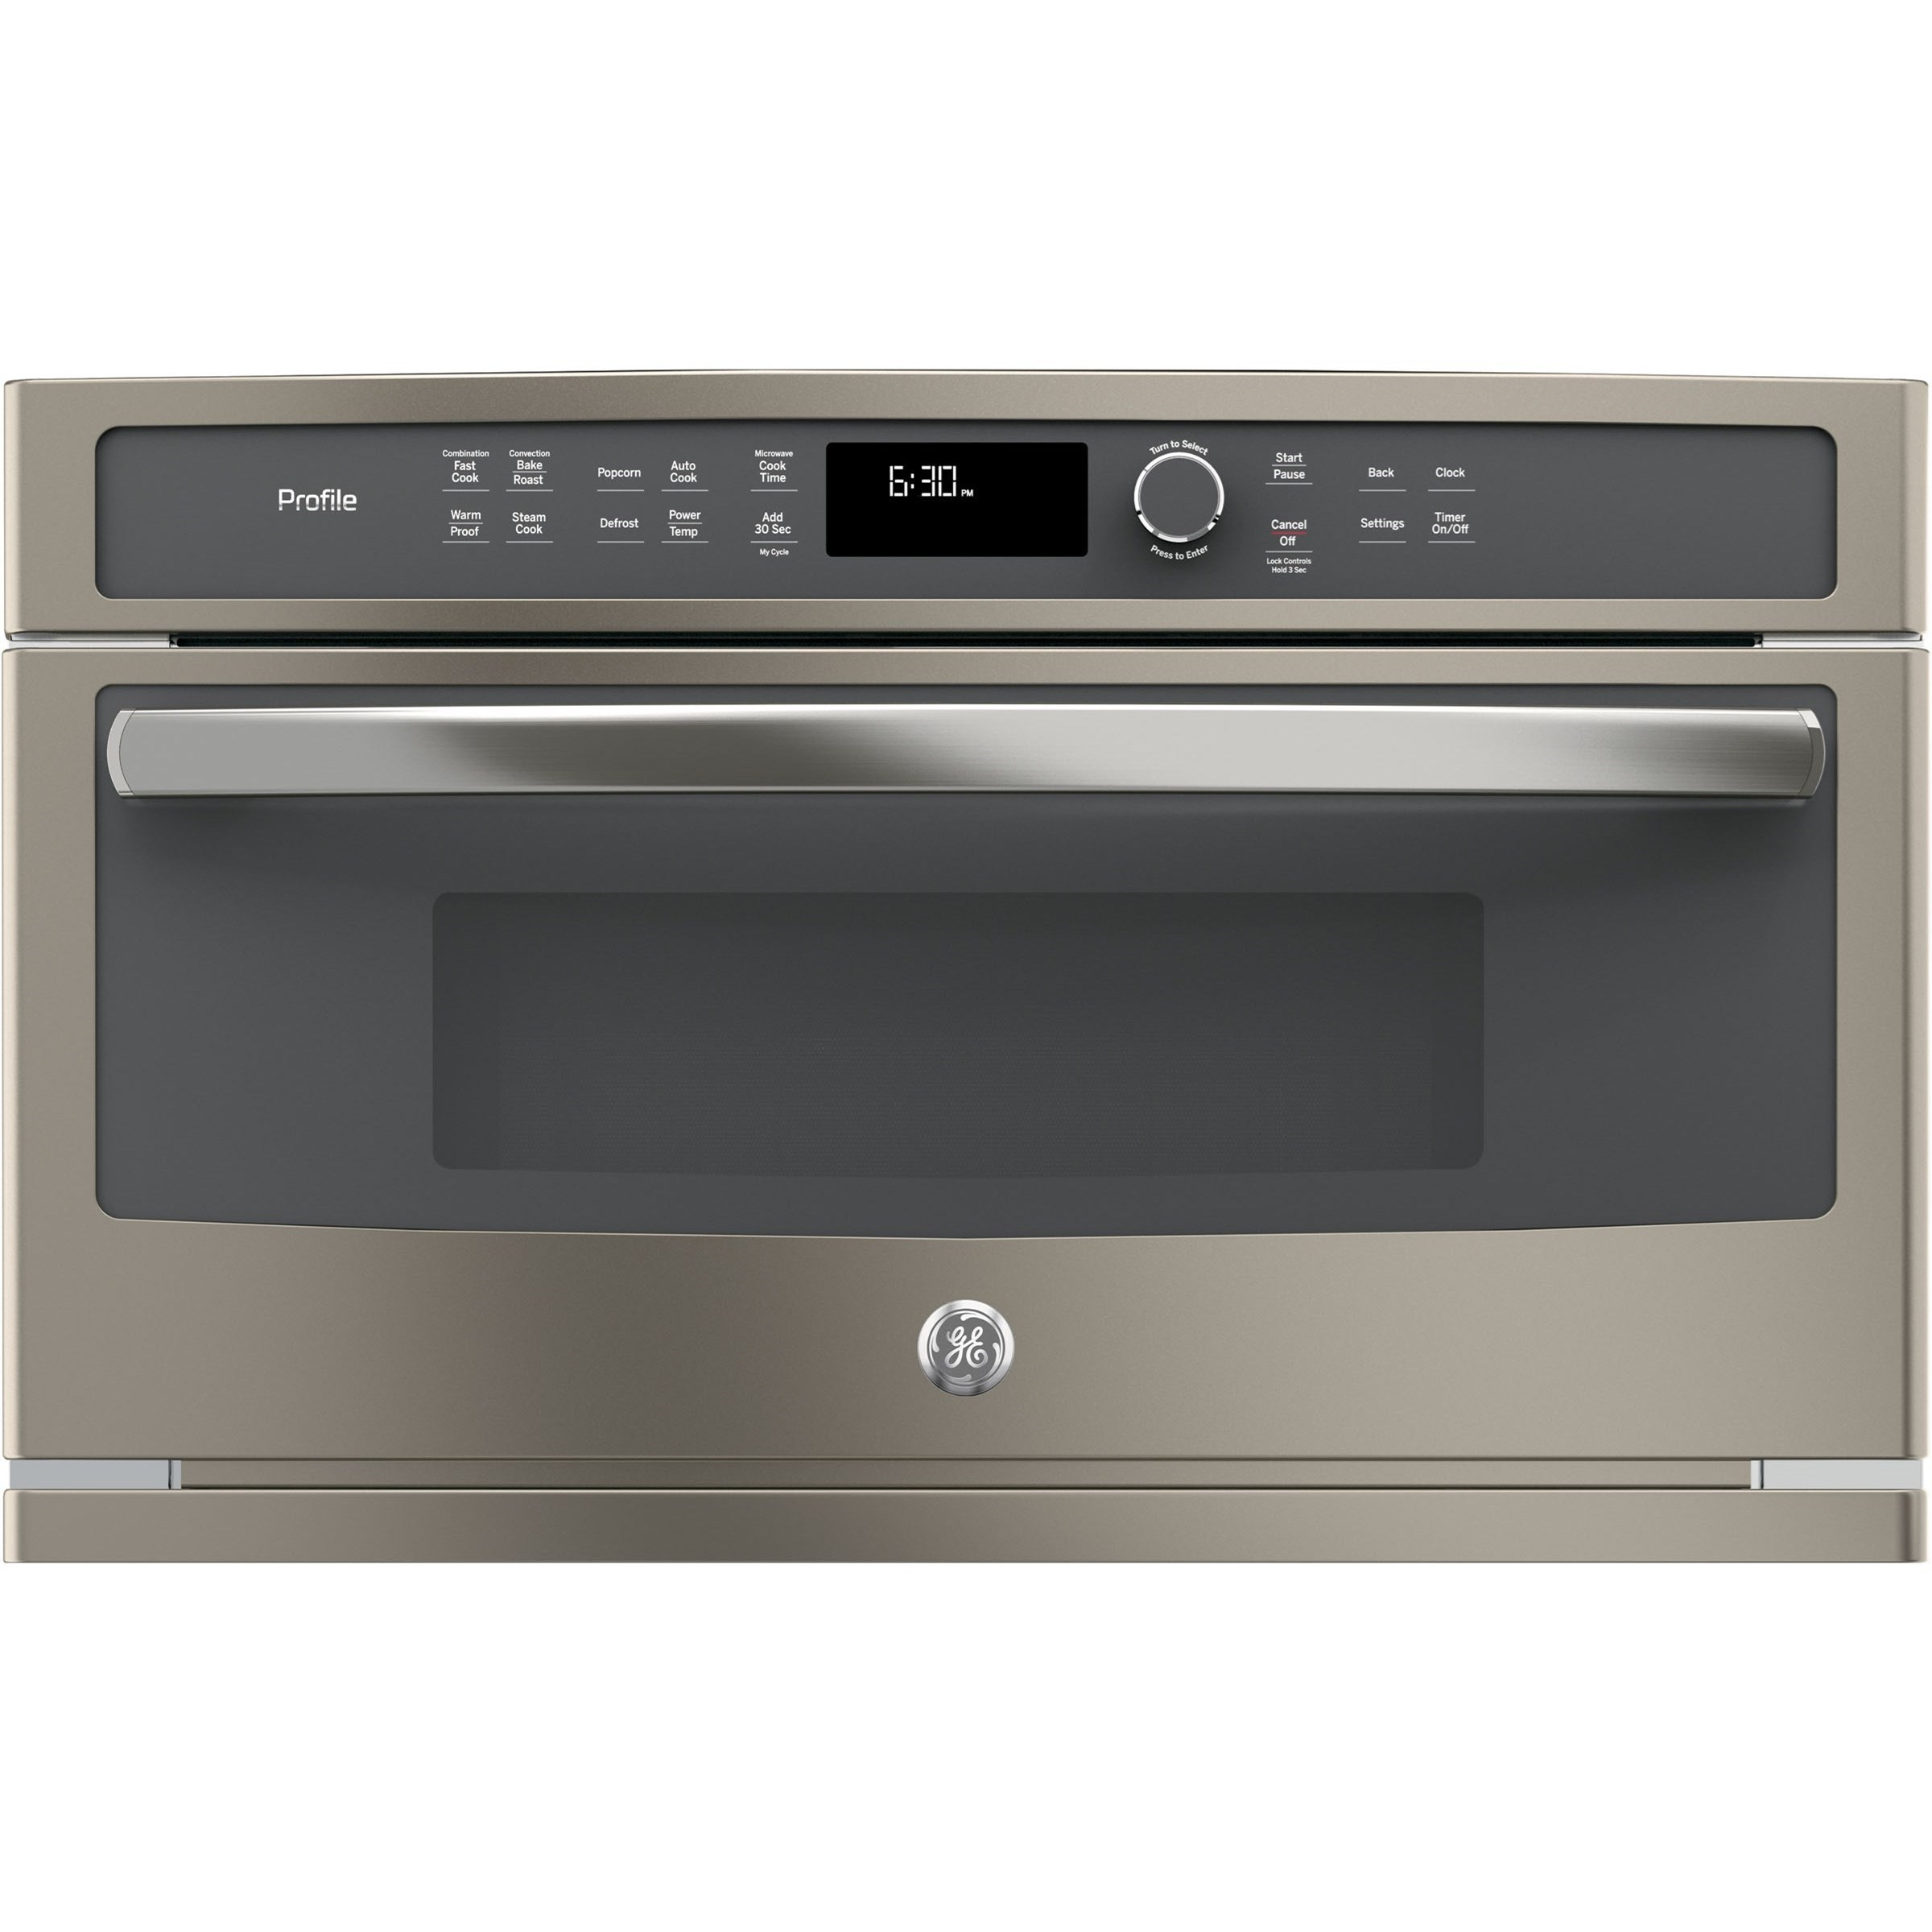 ge microwaves profile built in microwave convection oven